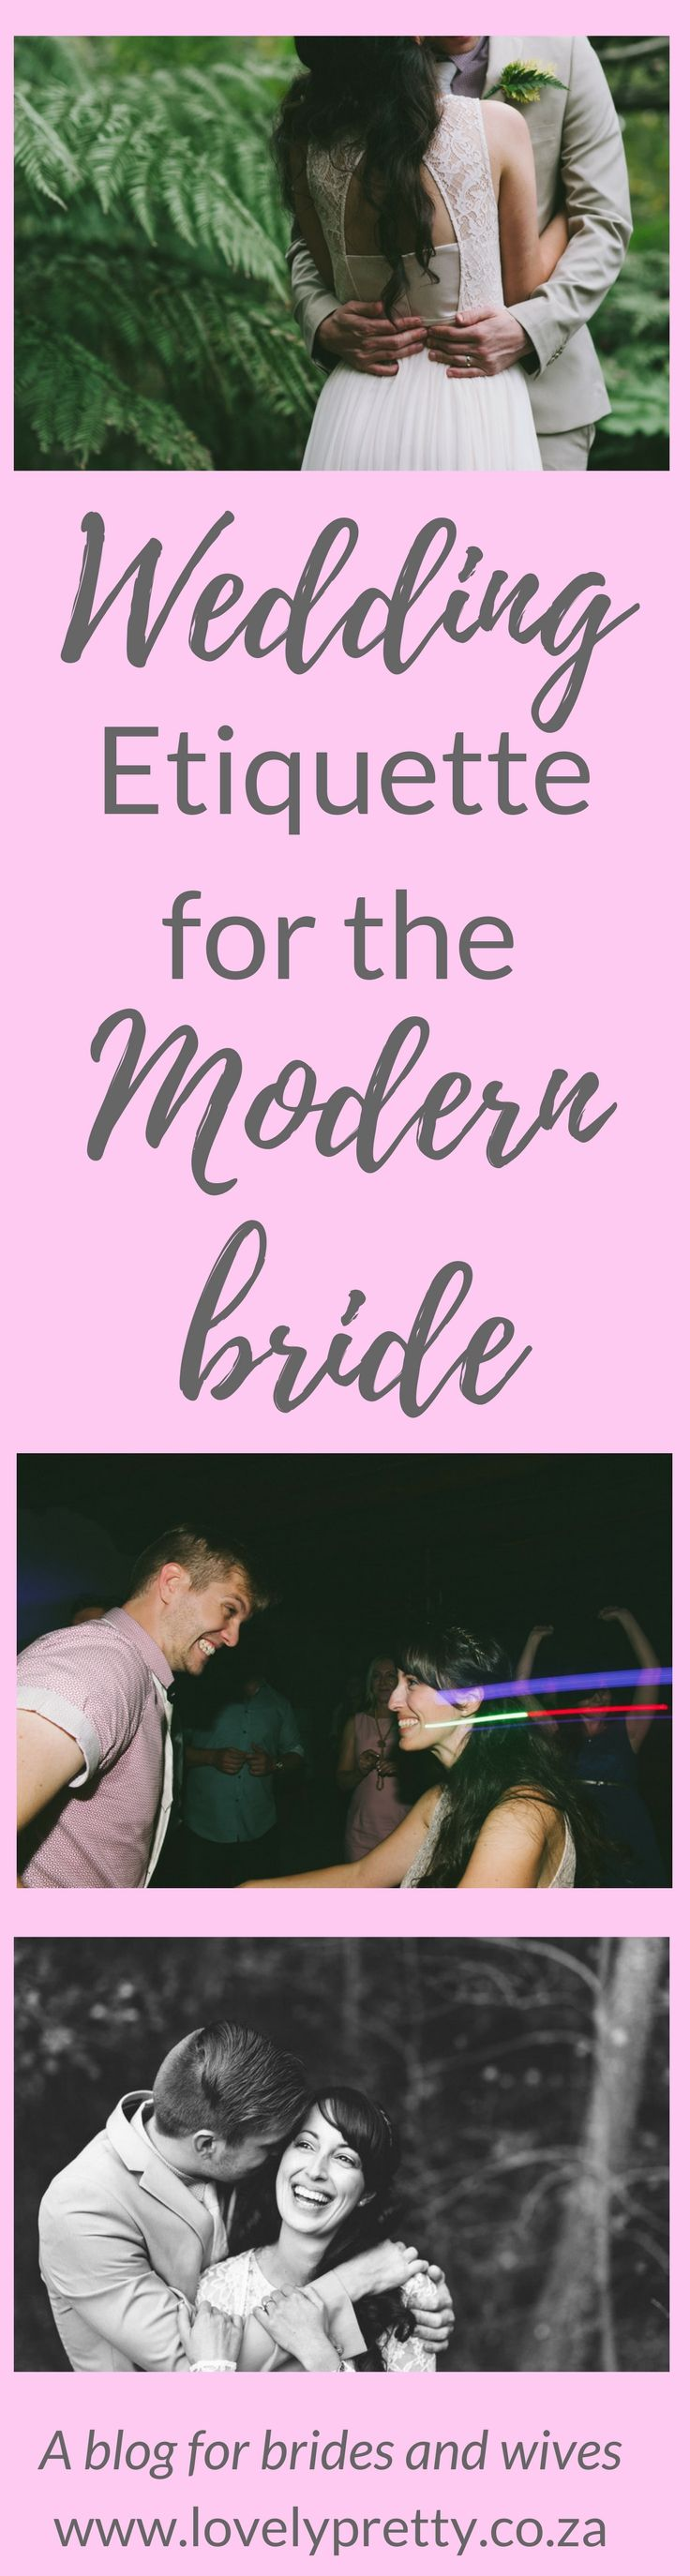 Wedding etiquette is archaic and oldschool. I've created a list of modern etiquette rules that make way more sense to me!